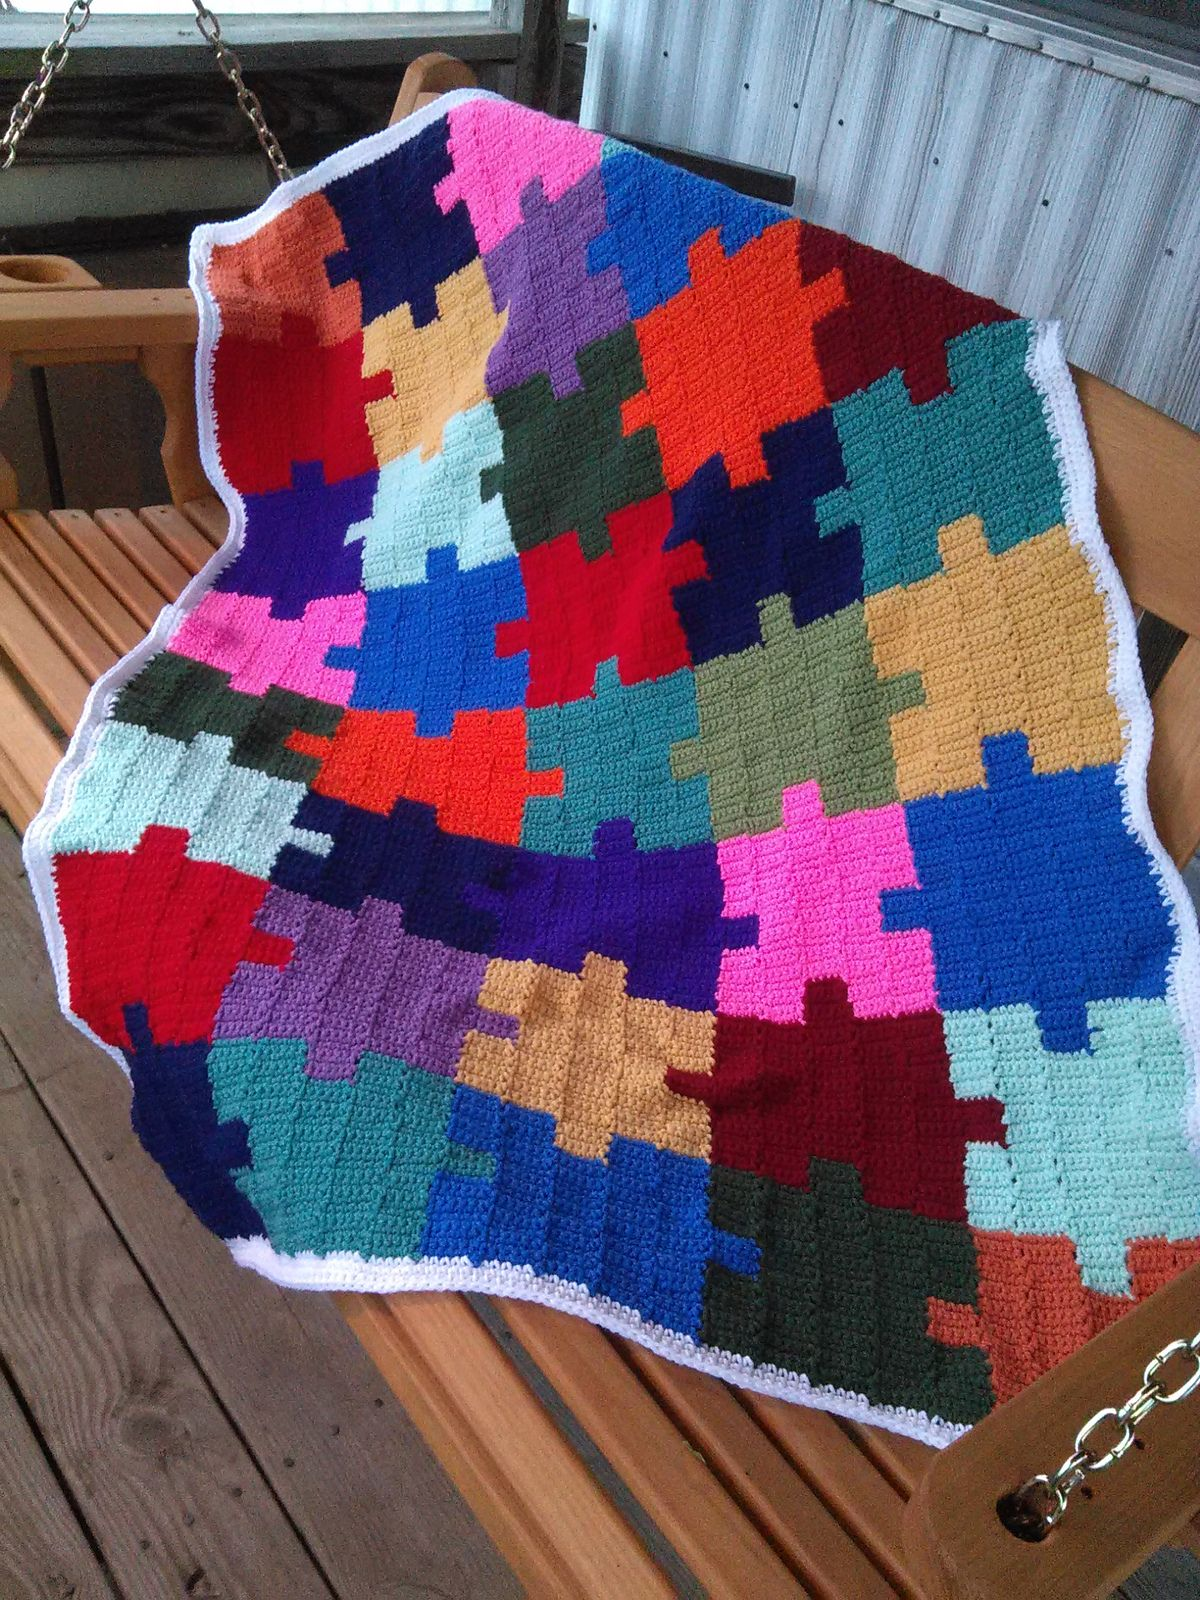 4894494b0 Autism Awareness Jigsaw Puzzle Afghan By Roberta Duley - Free ...